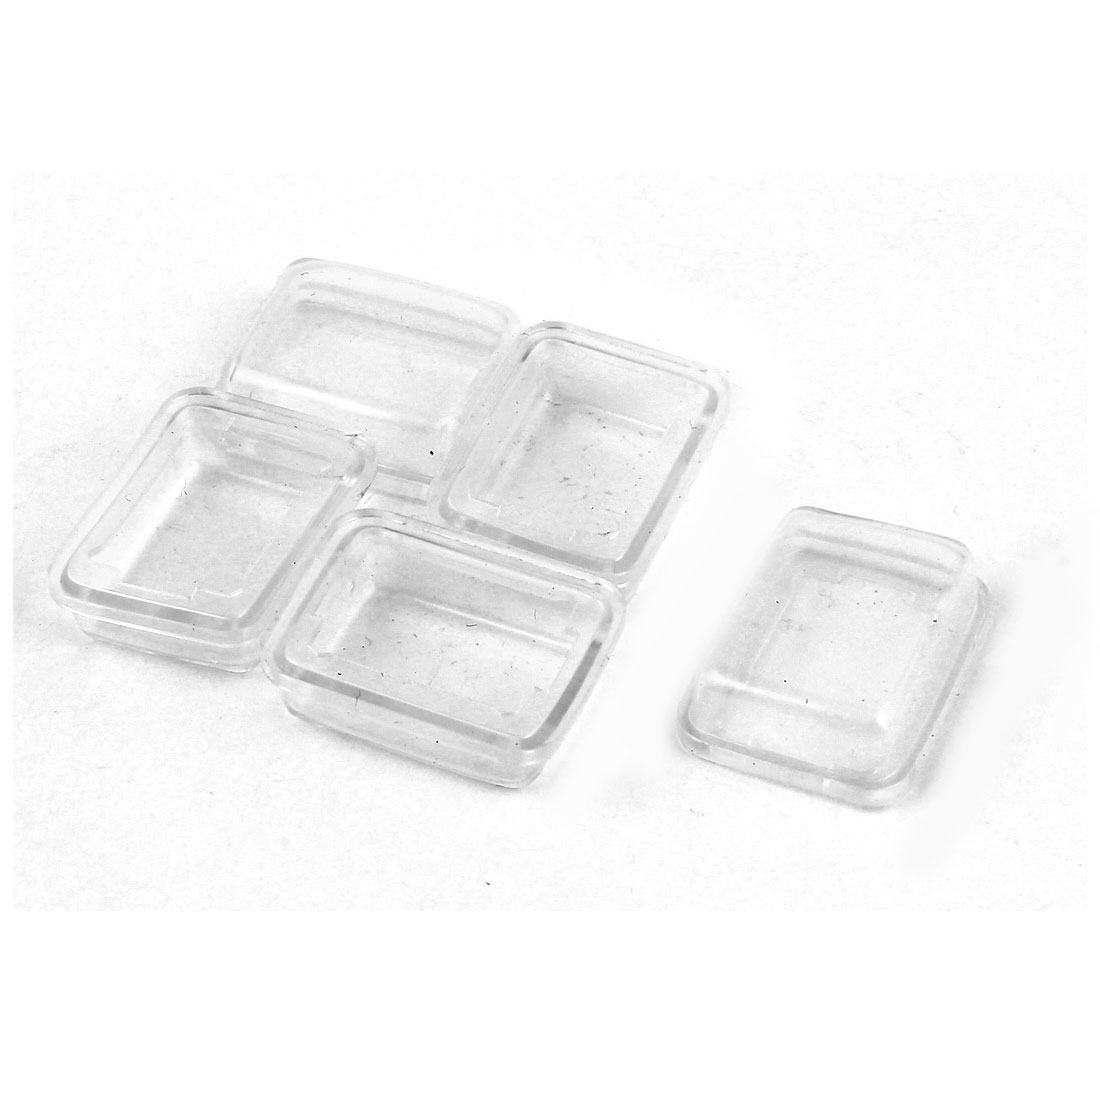 5 Pcs White Clear Silicone Waterproof Rocker Switch Protect Cover Rectangle Cap